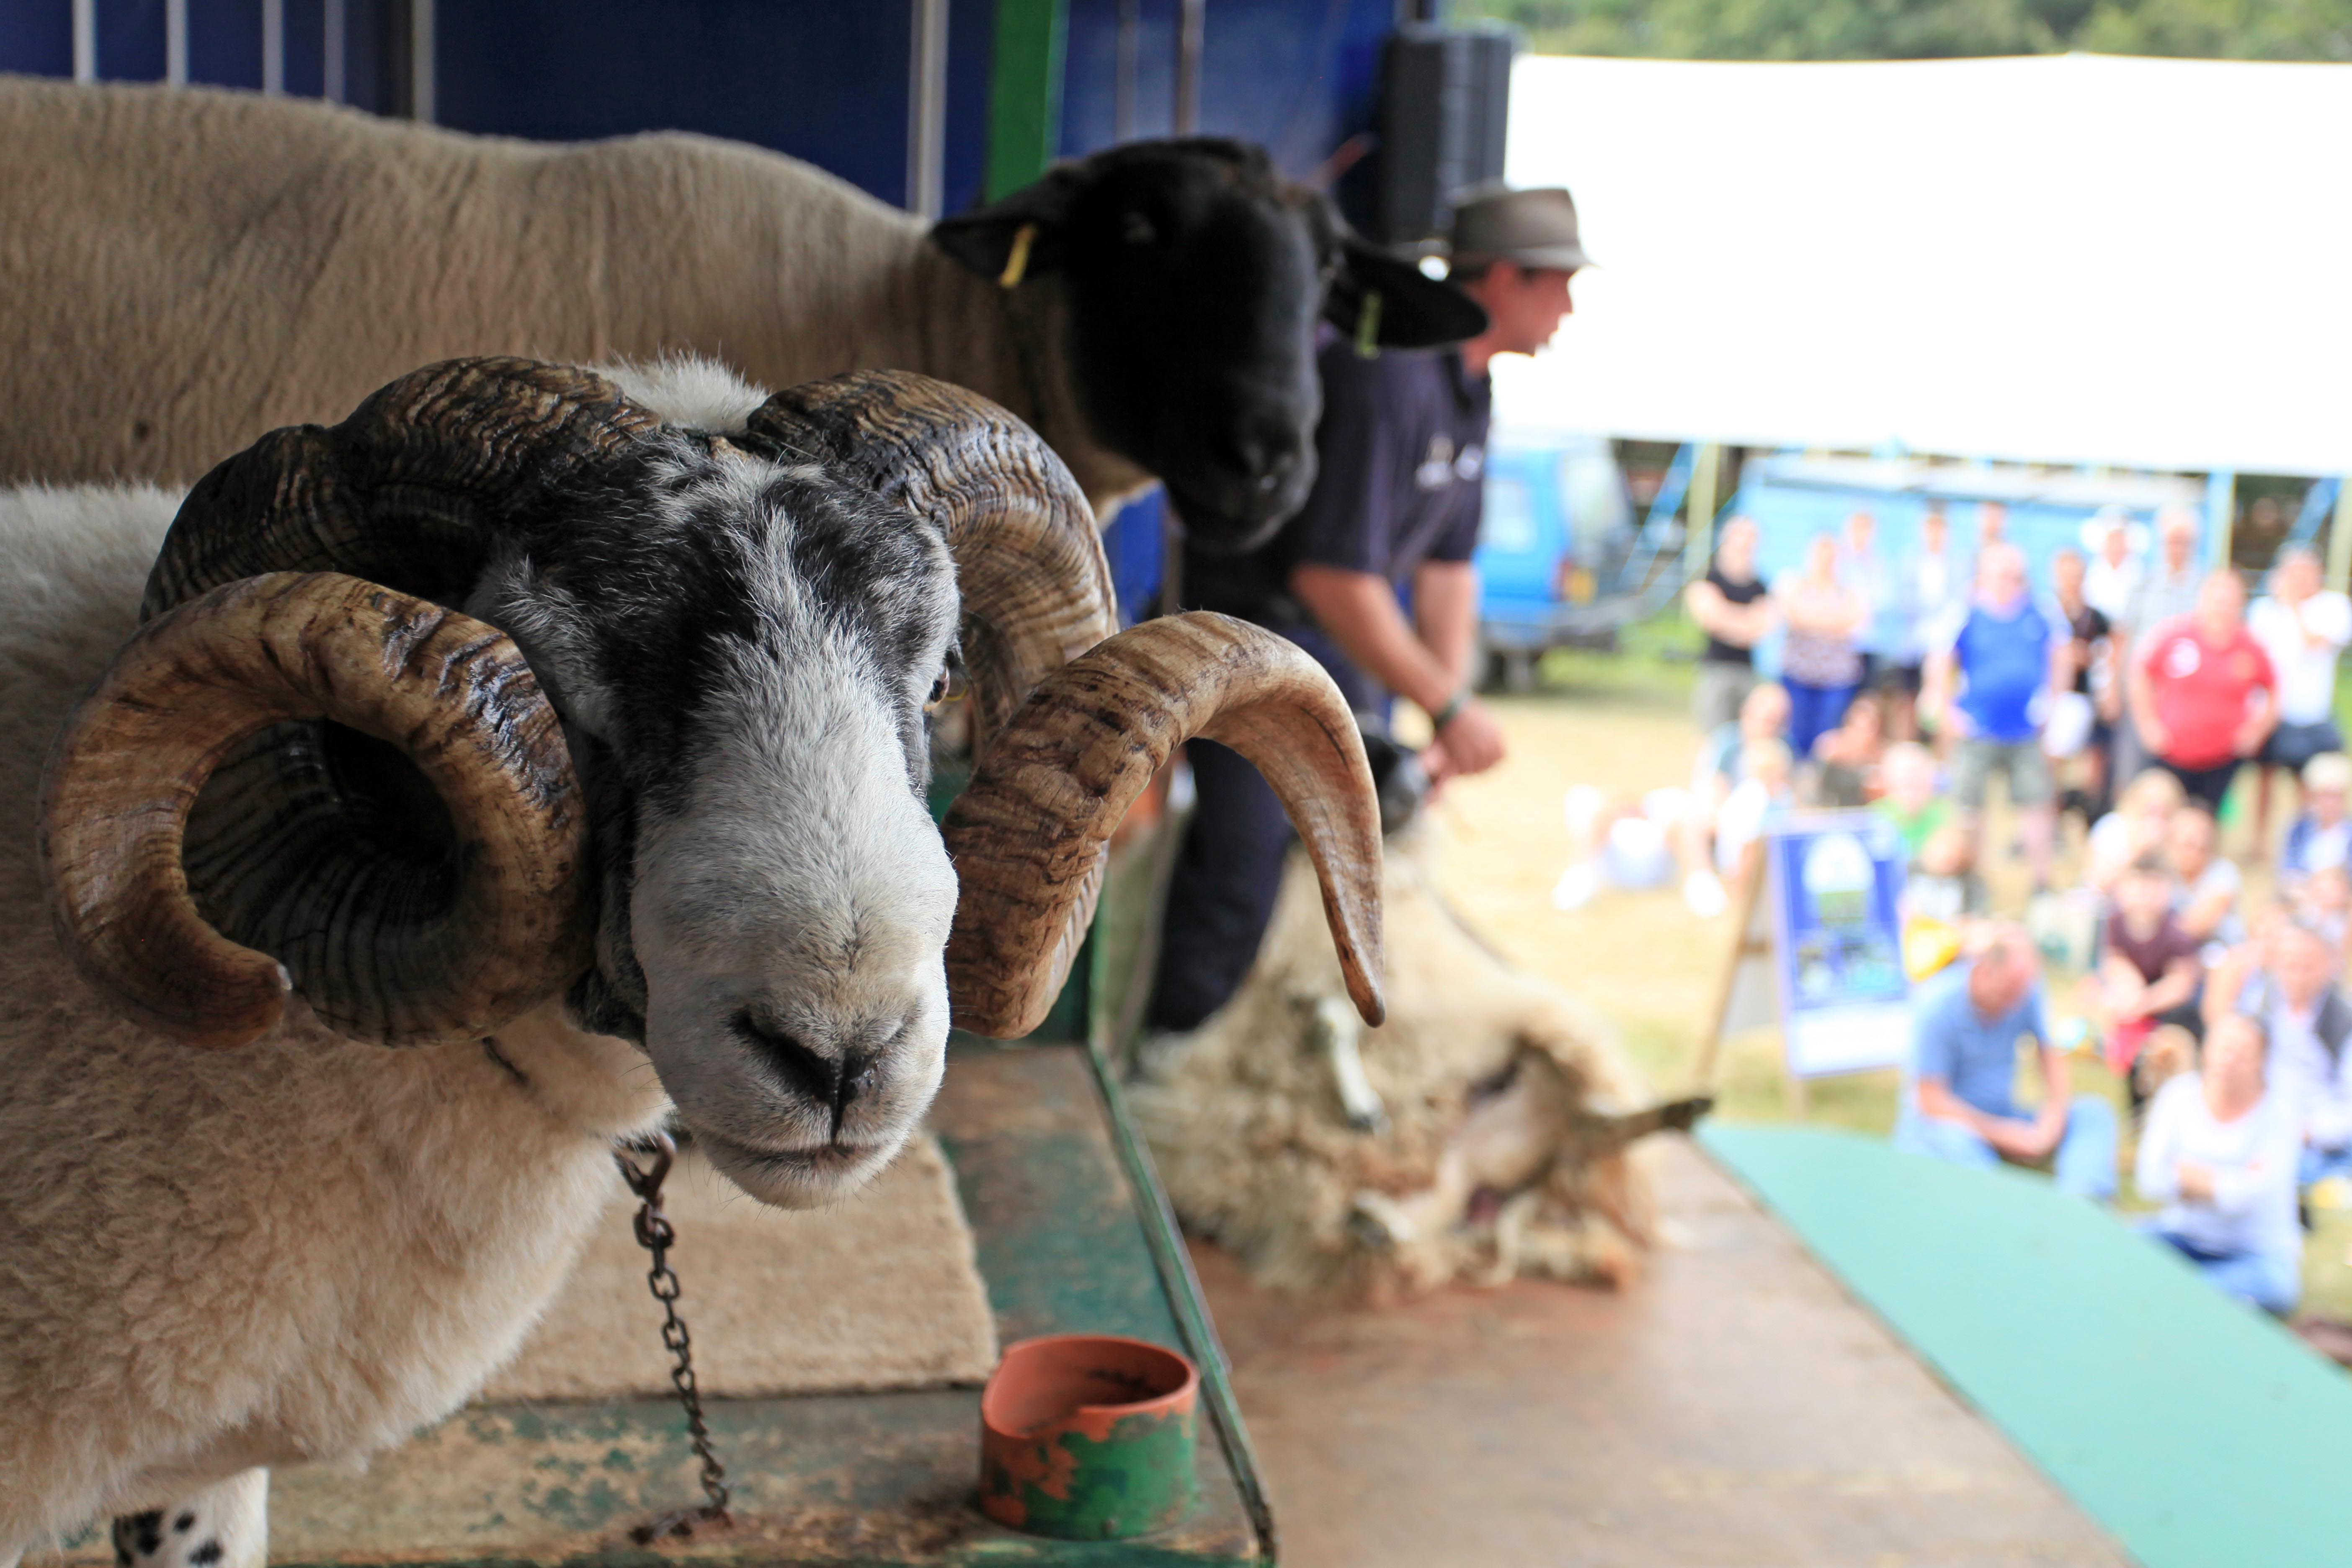 Whats On - Attractions & Activities l New Forest Show